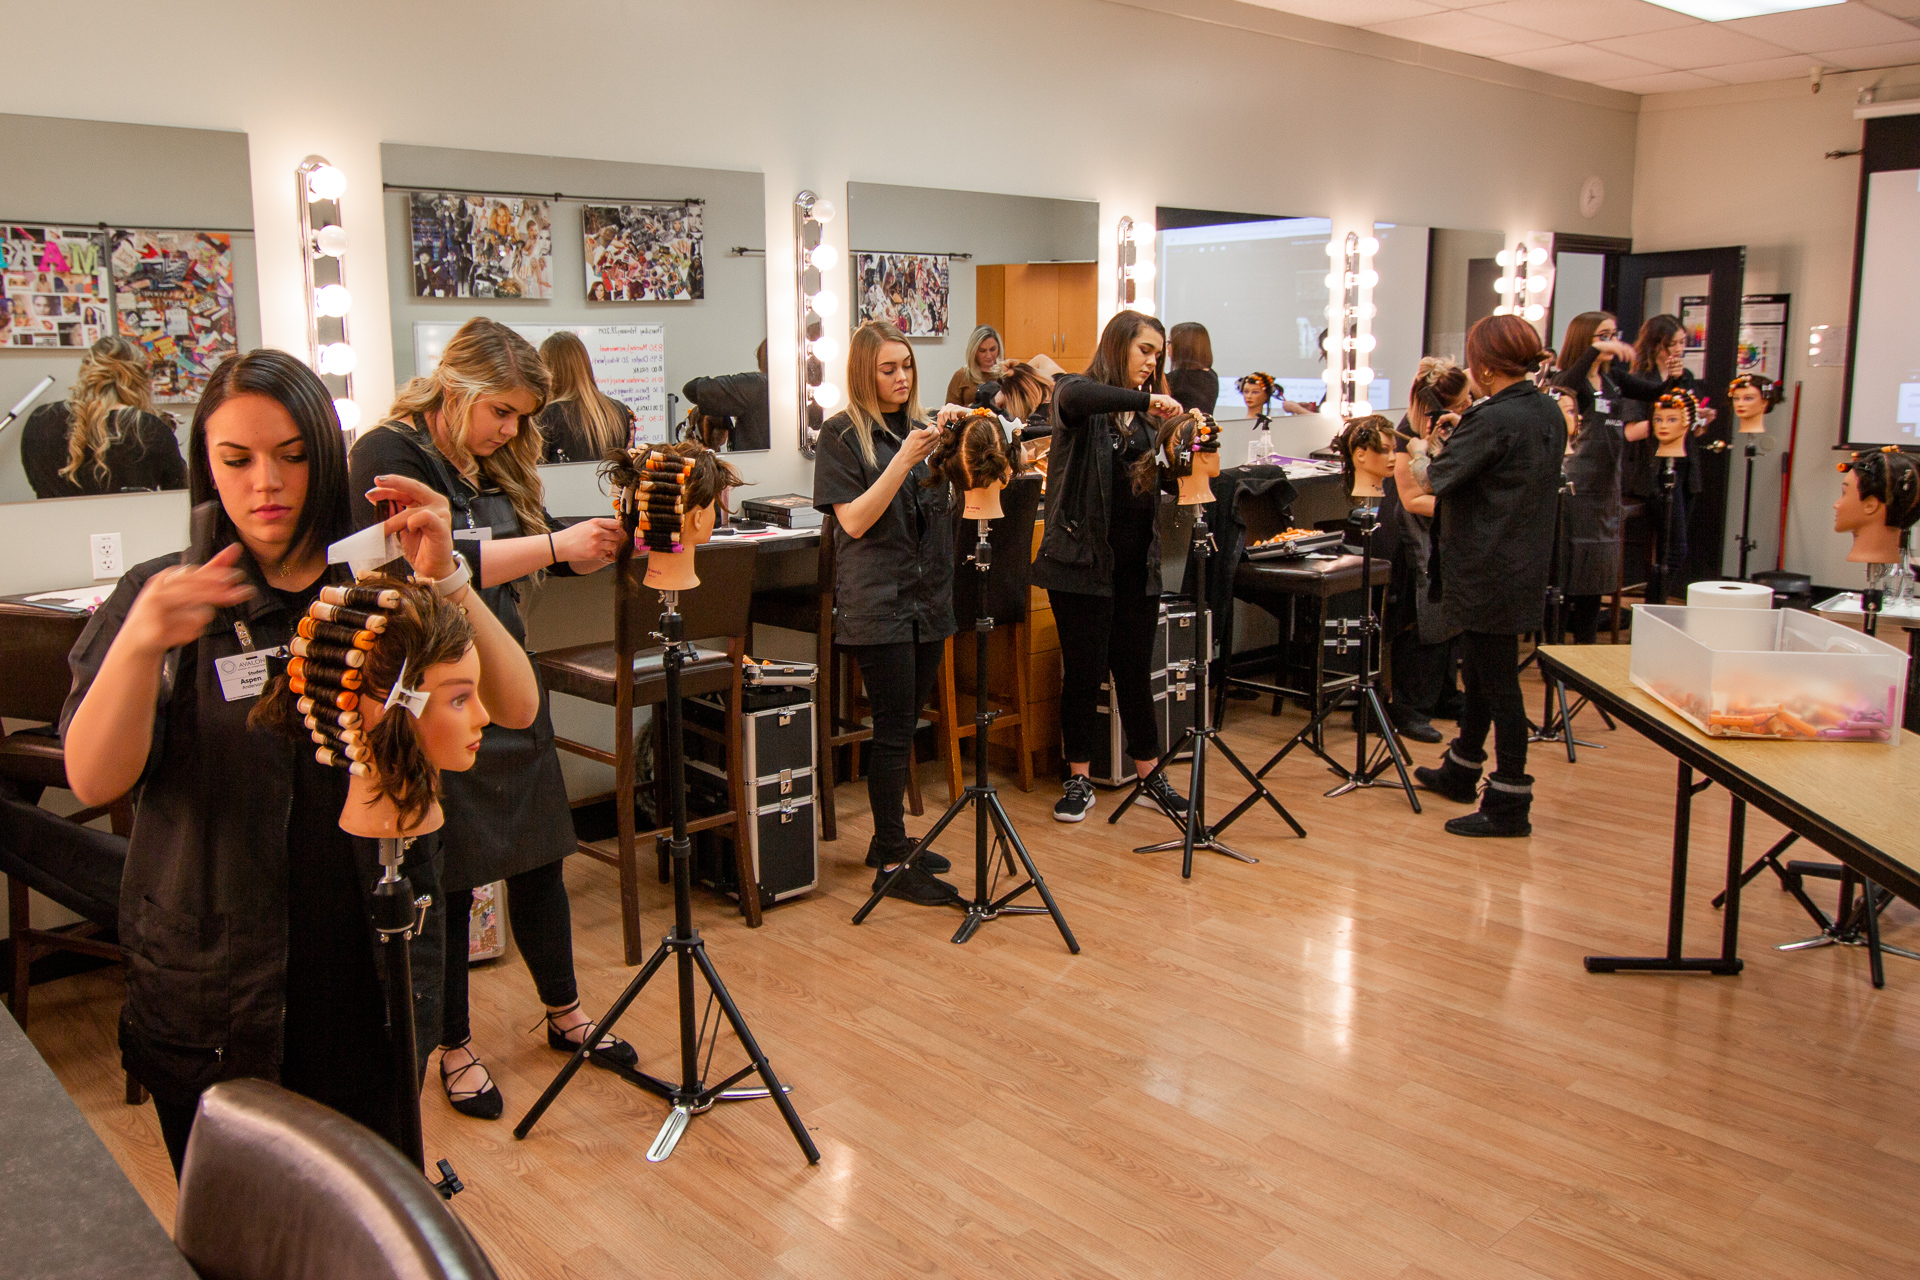 A class of people in beauty school practicing on hair dummies